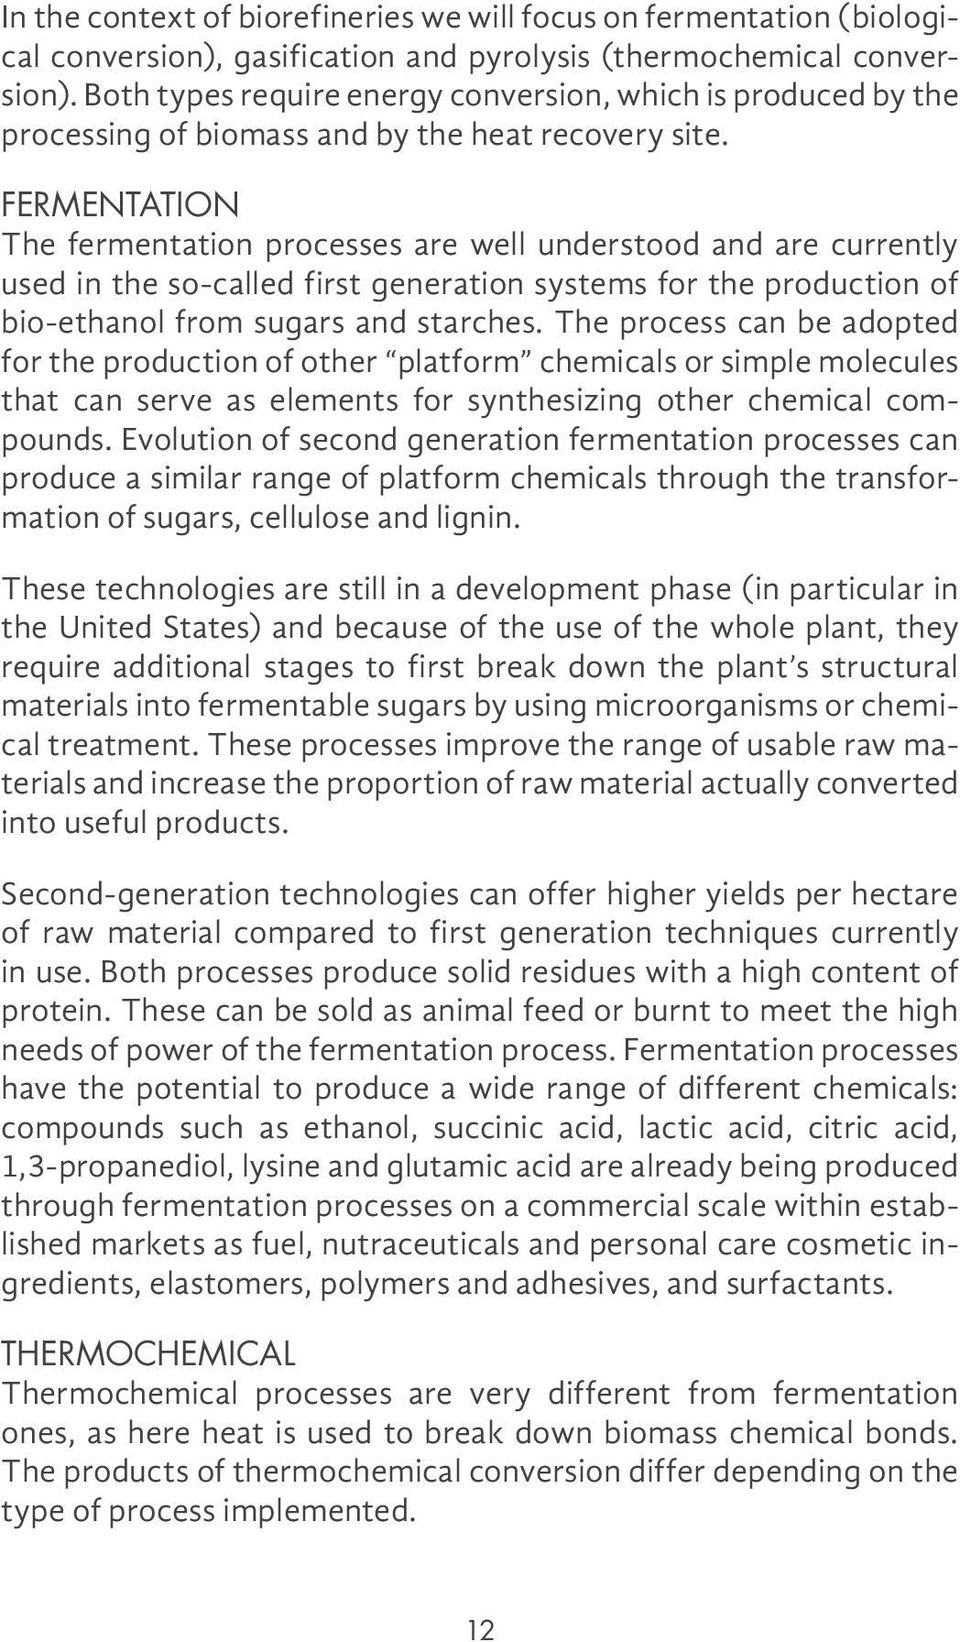 FERMENTATION The fermentation processes are well understood and are currently used in the so-called first generation systems for the production of bio-ethanol from sugars and starches.